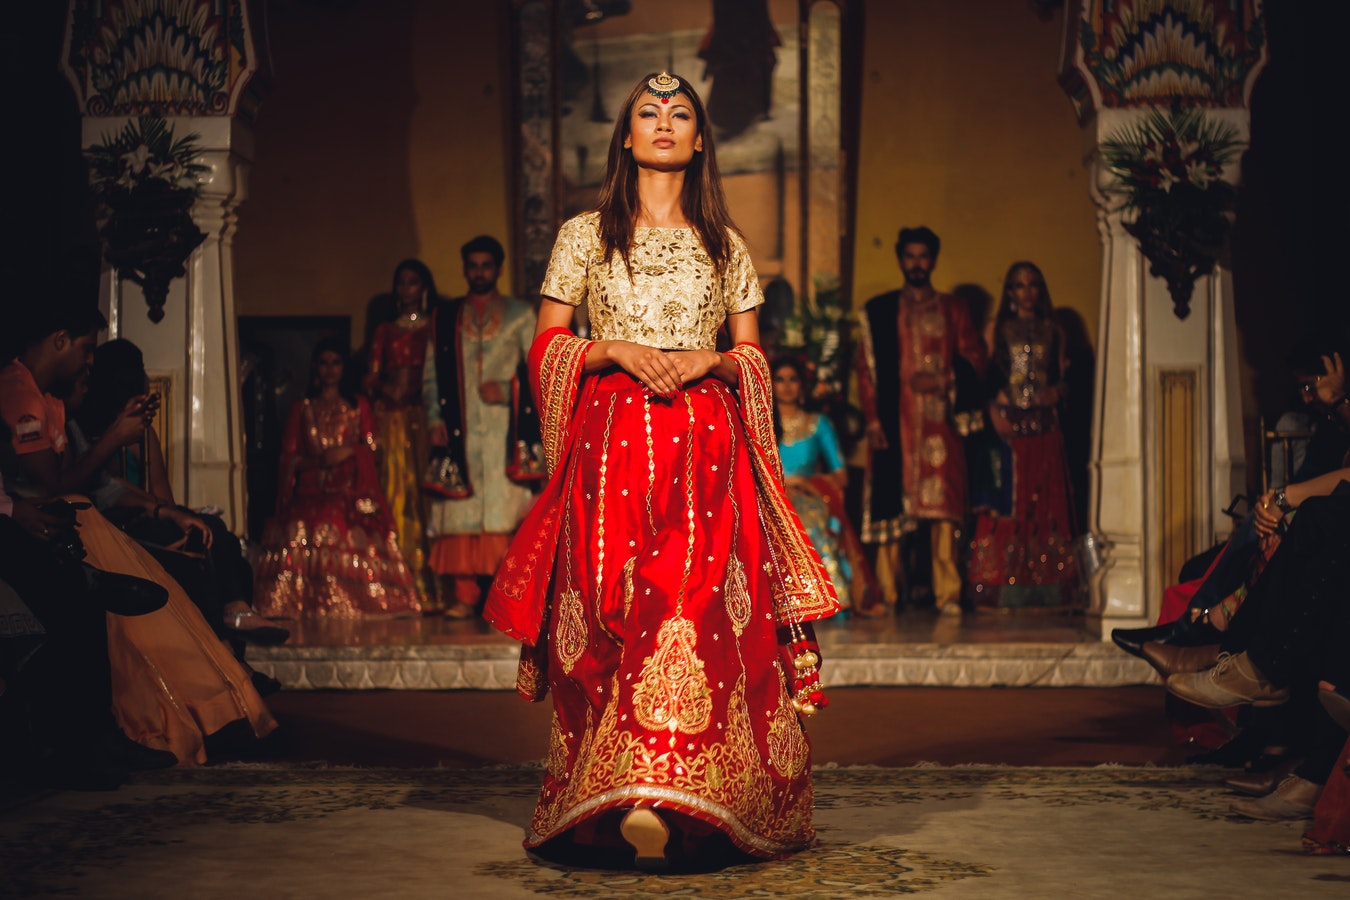 HOW TO BECOME A SOUTH ASIAN FASHION ENTREPRENEUR IN THE WEST?